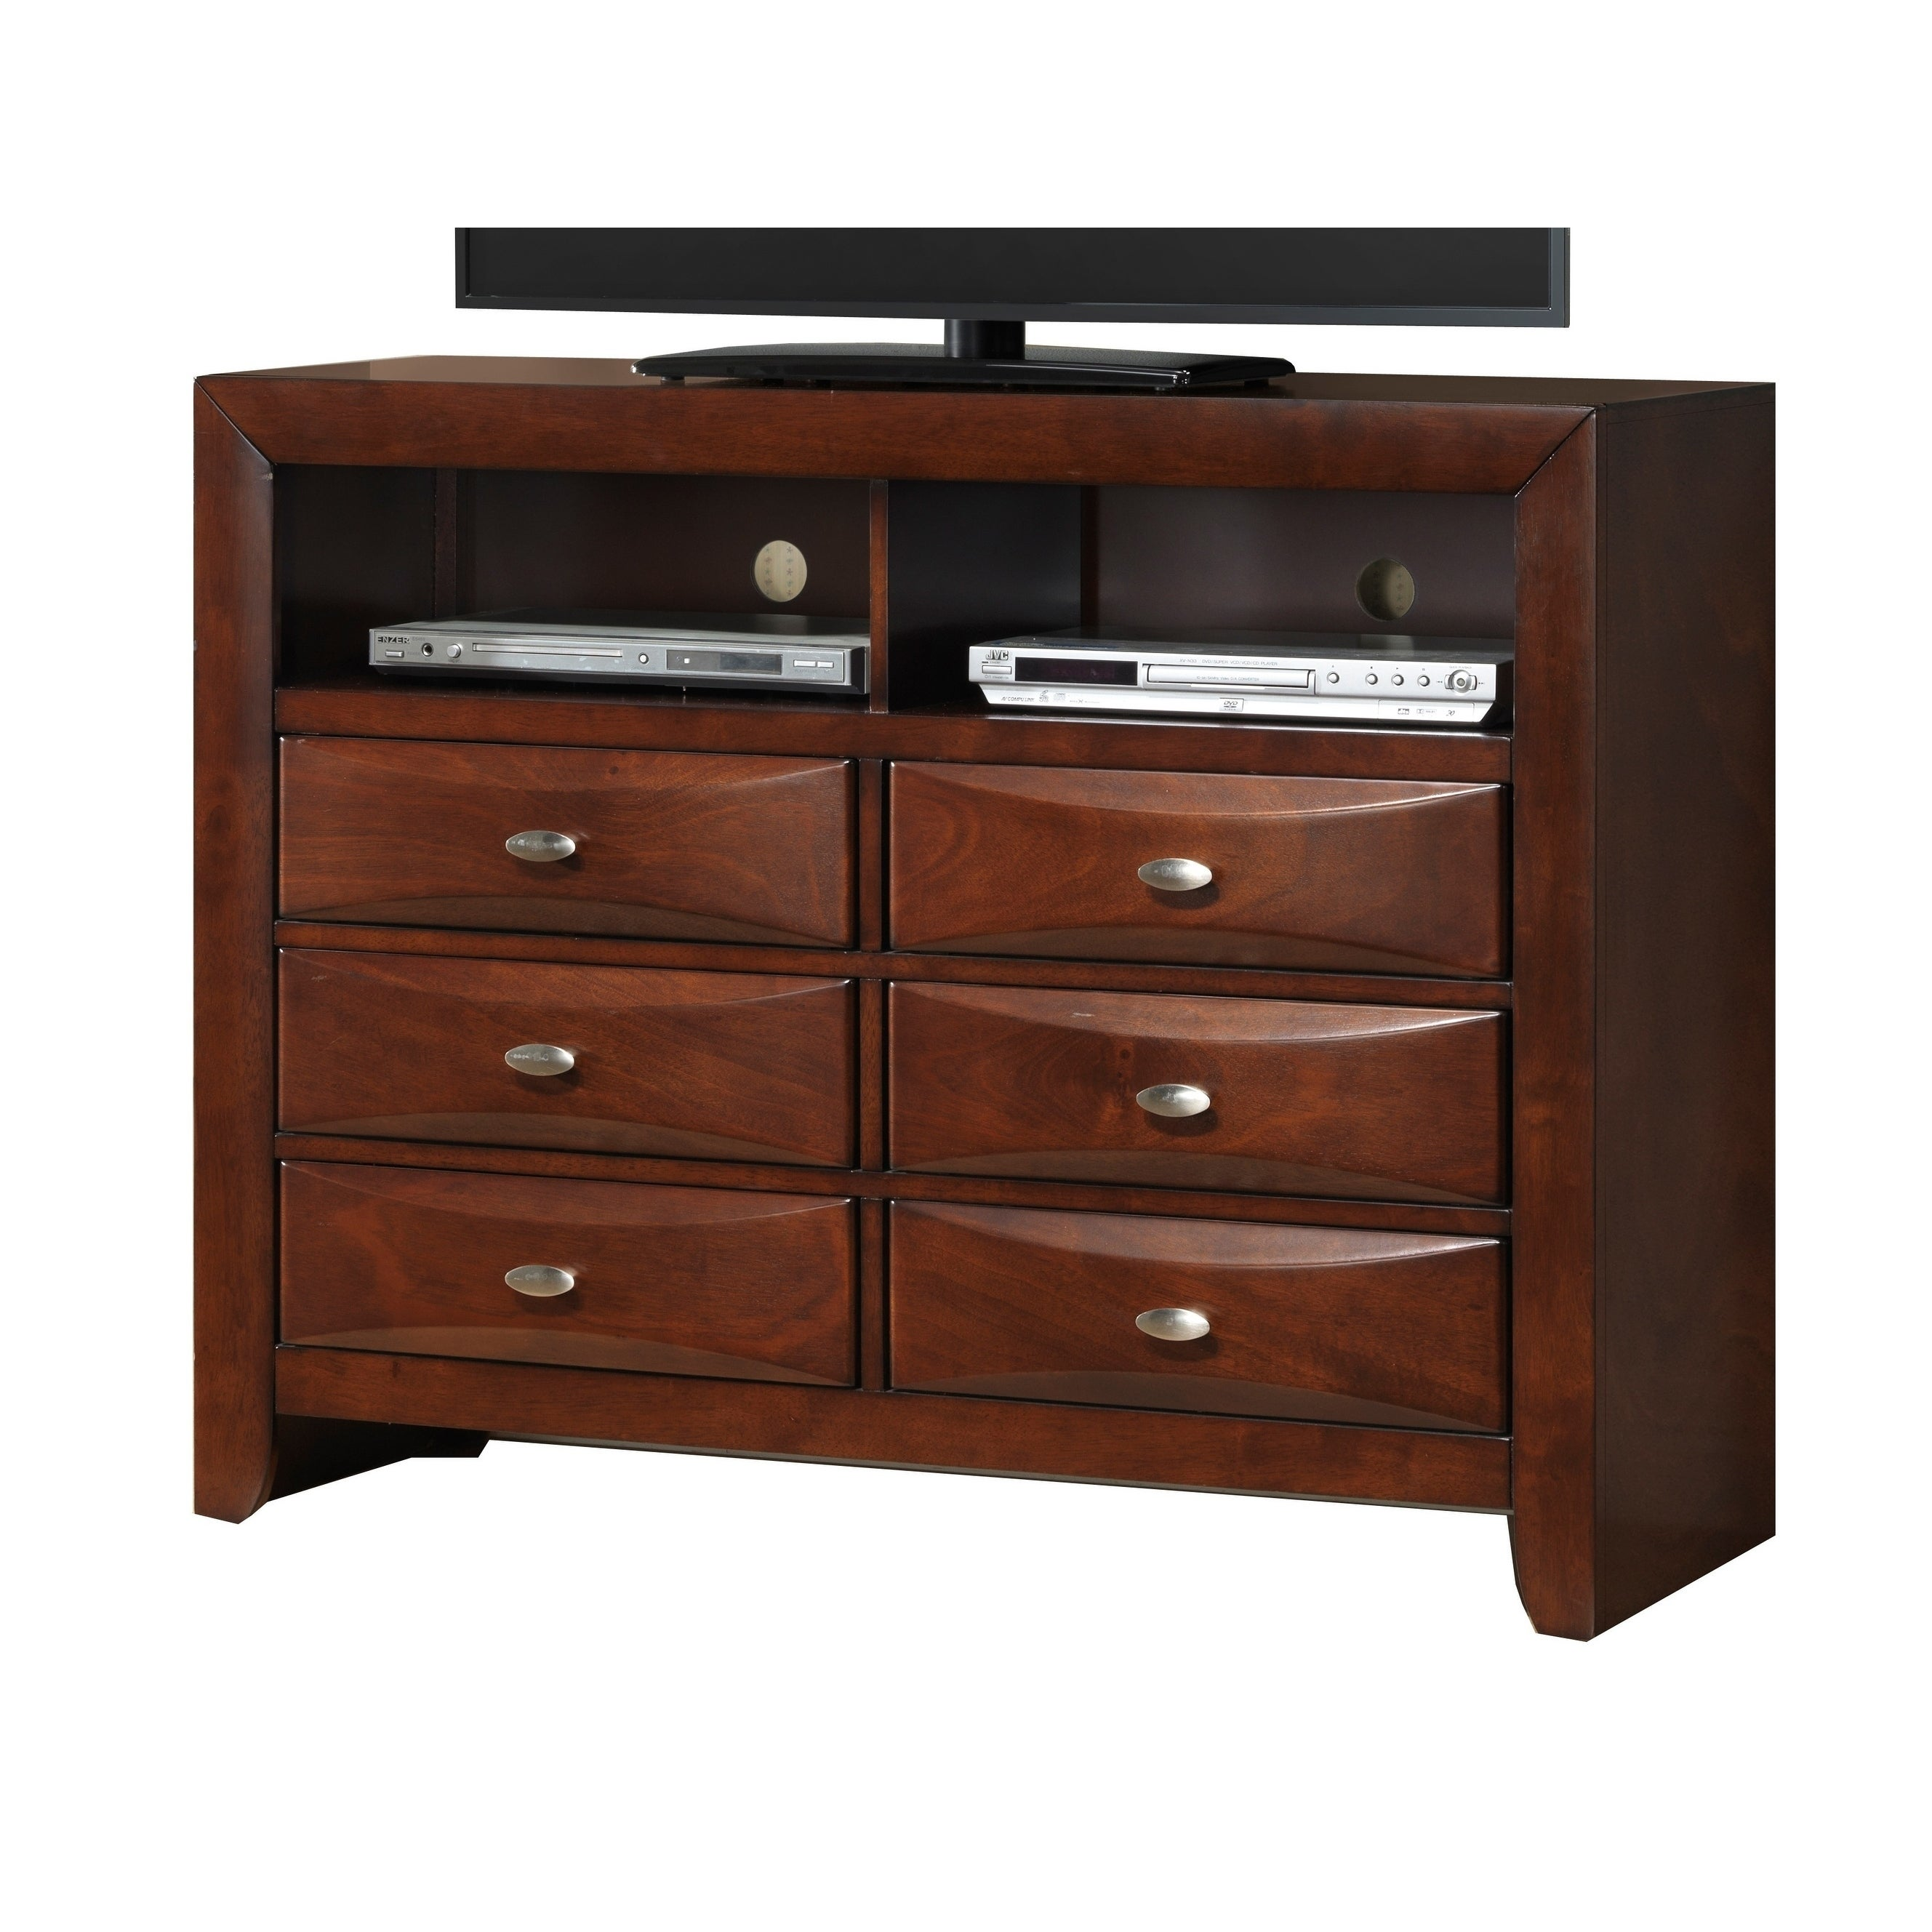 Shop blemerey fully assembled tv chest cherry wood finish free shipping today overstock com 17925561